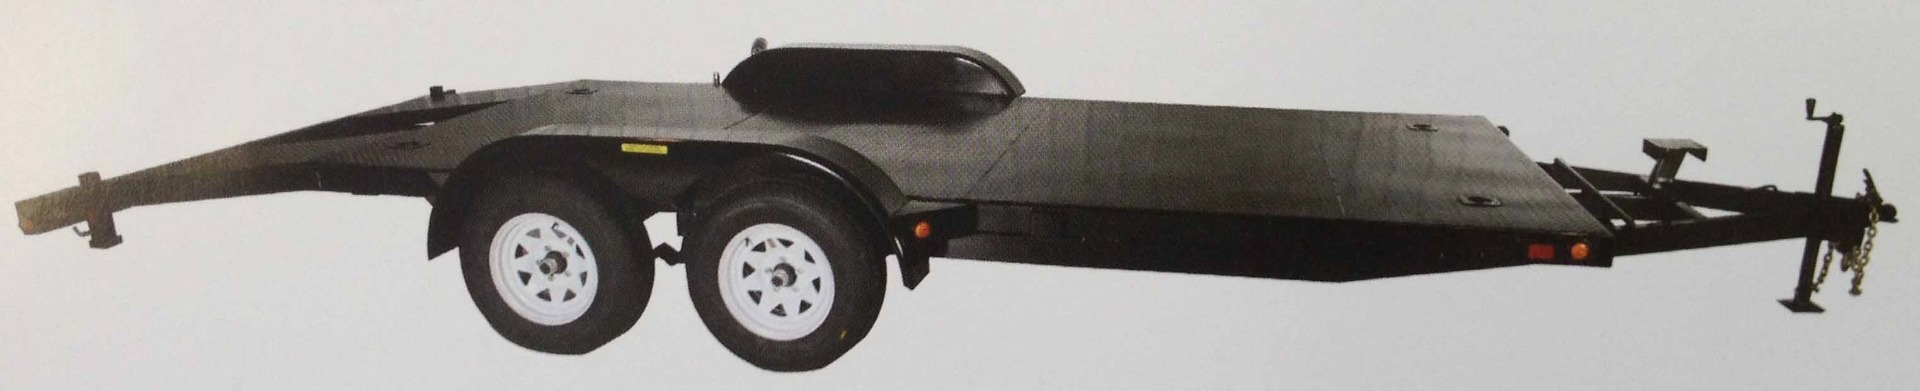 "JDJ Car Carrier Tandem Trailer (6'8"" W x 16' L) model CC 7000 8016"